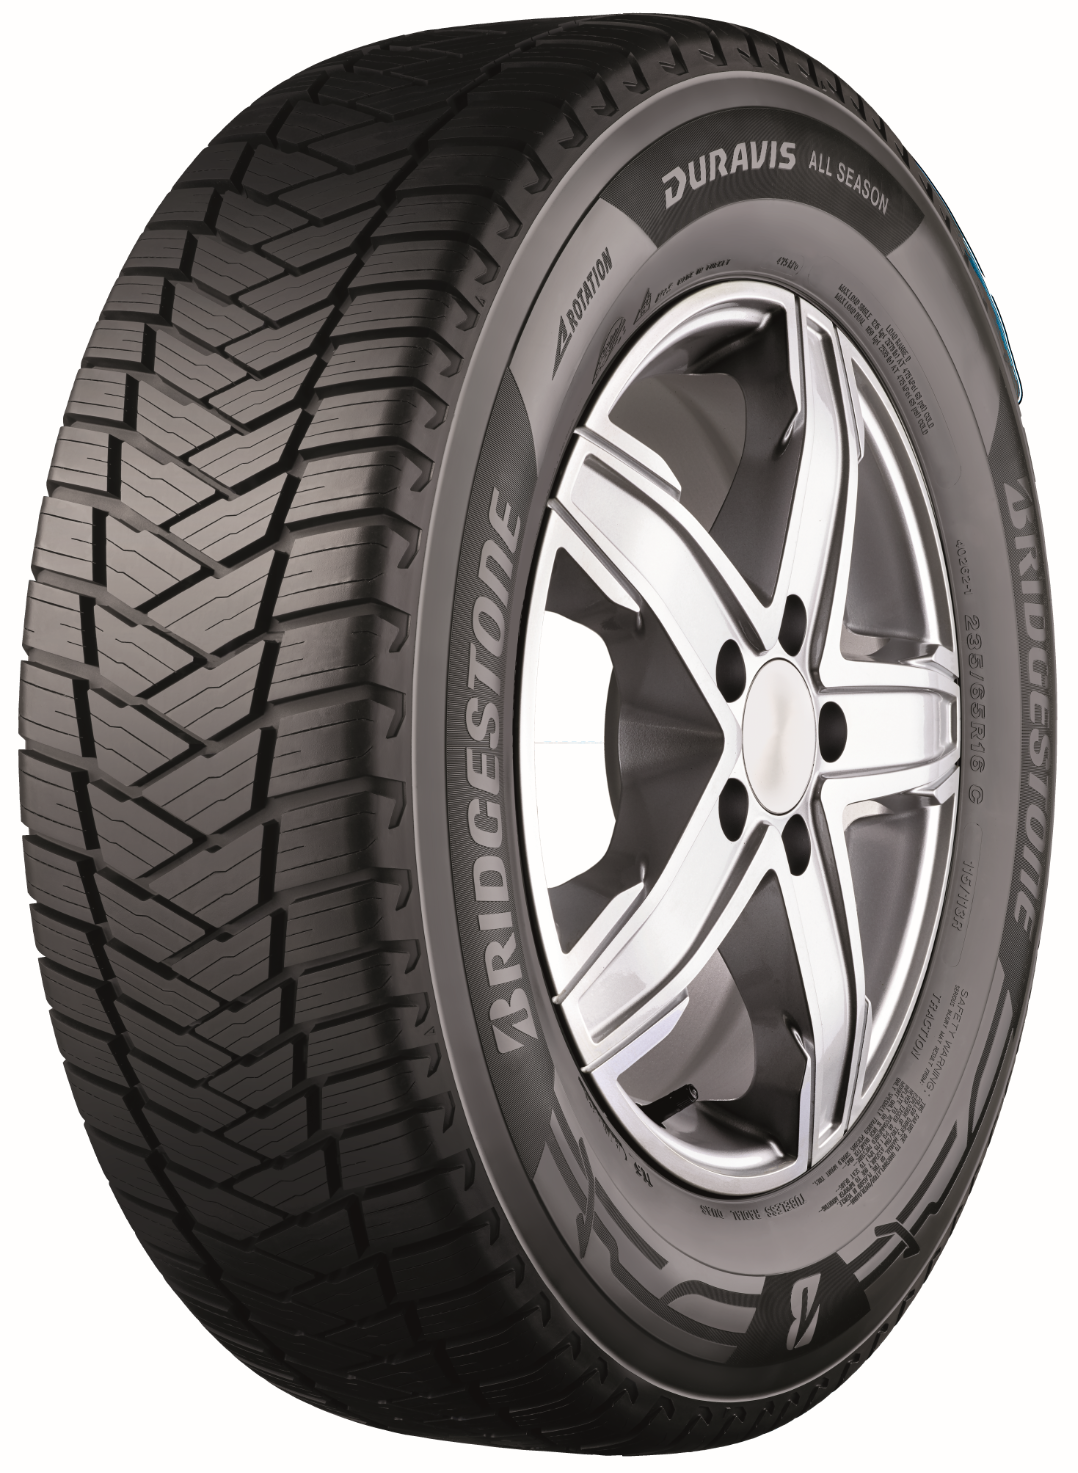 Bridgestone launches A-rated Duravis All Season light truck tyre